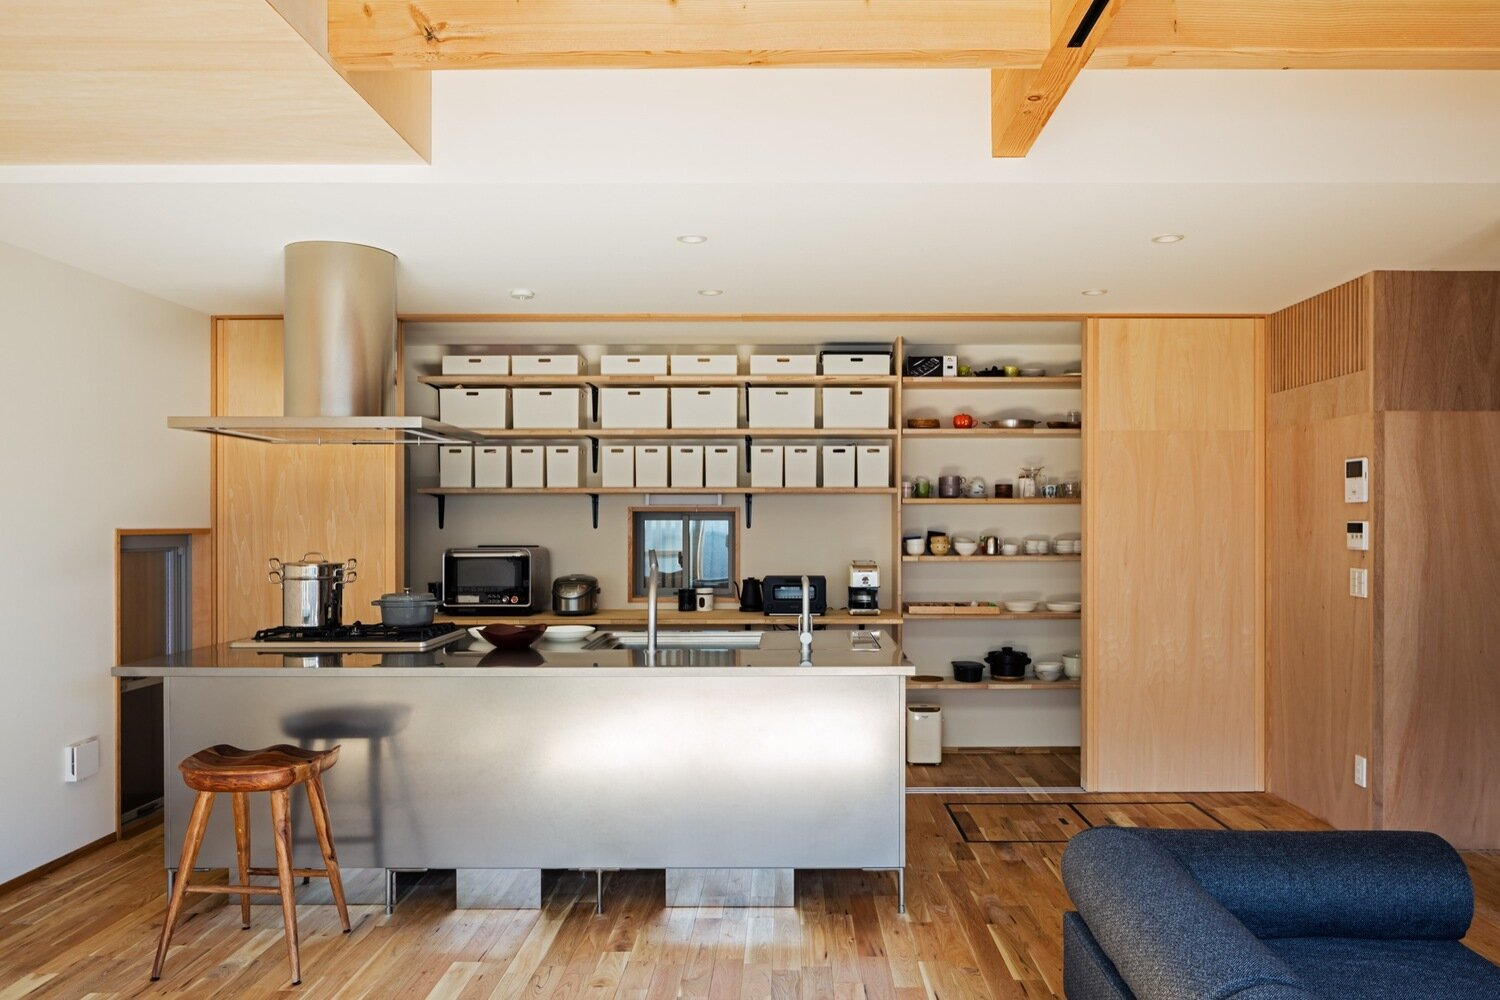 S-House - Coil Kazuteru Matumura Architects - Japan - Kitchen - Humble Homes